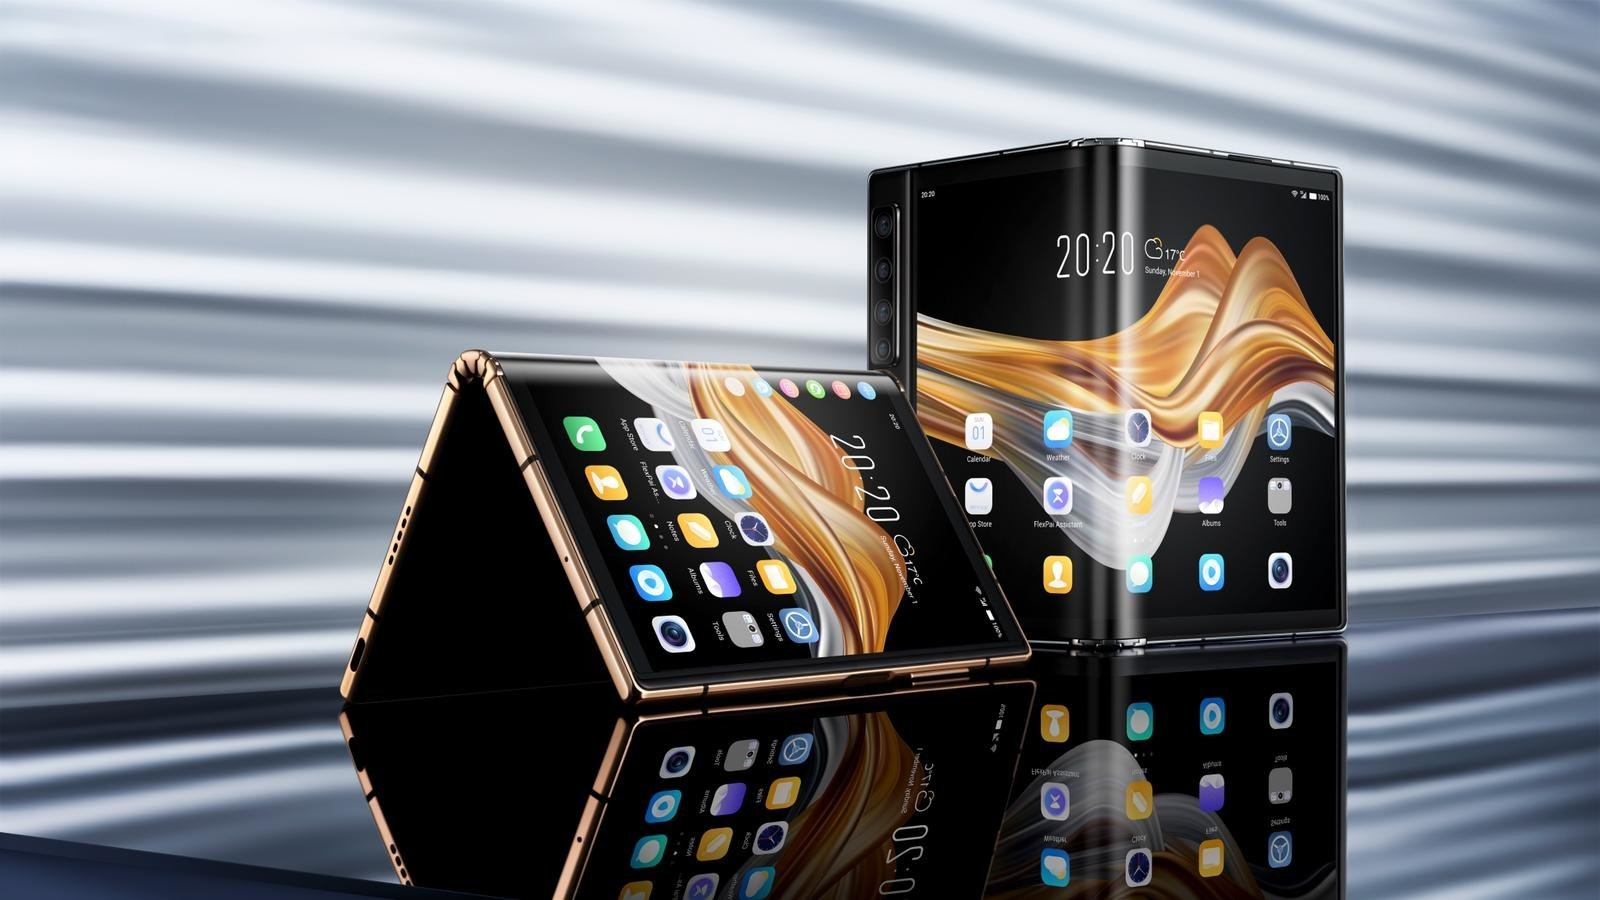 Royole Announced New Foldable Smartphone FlexPai 2